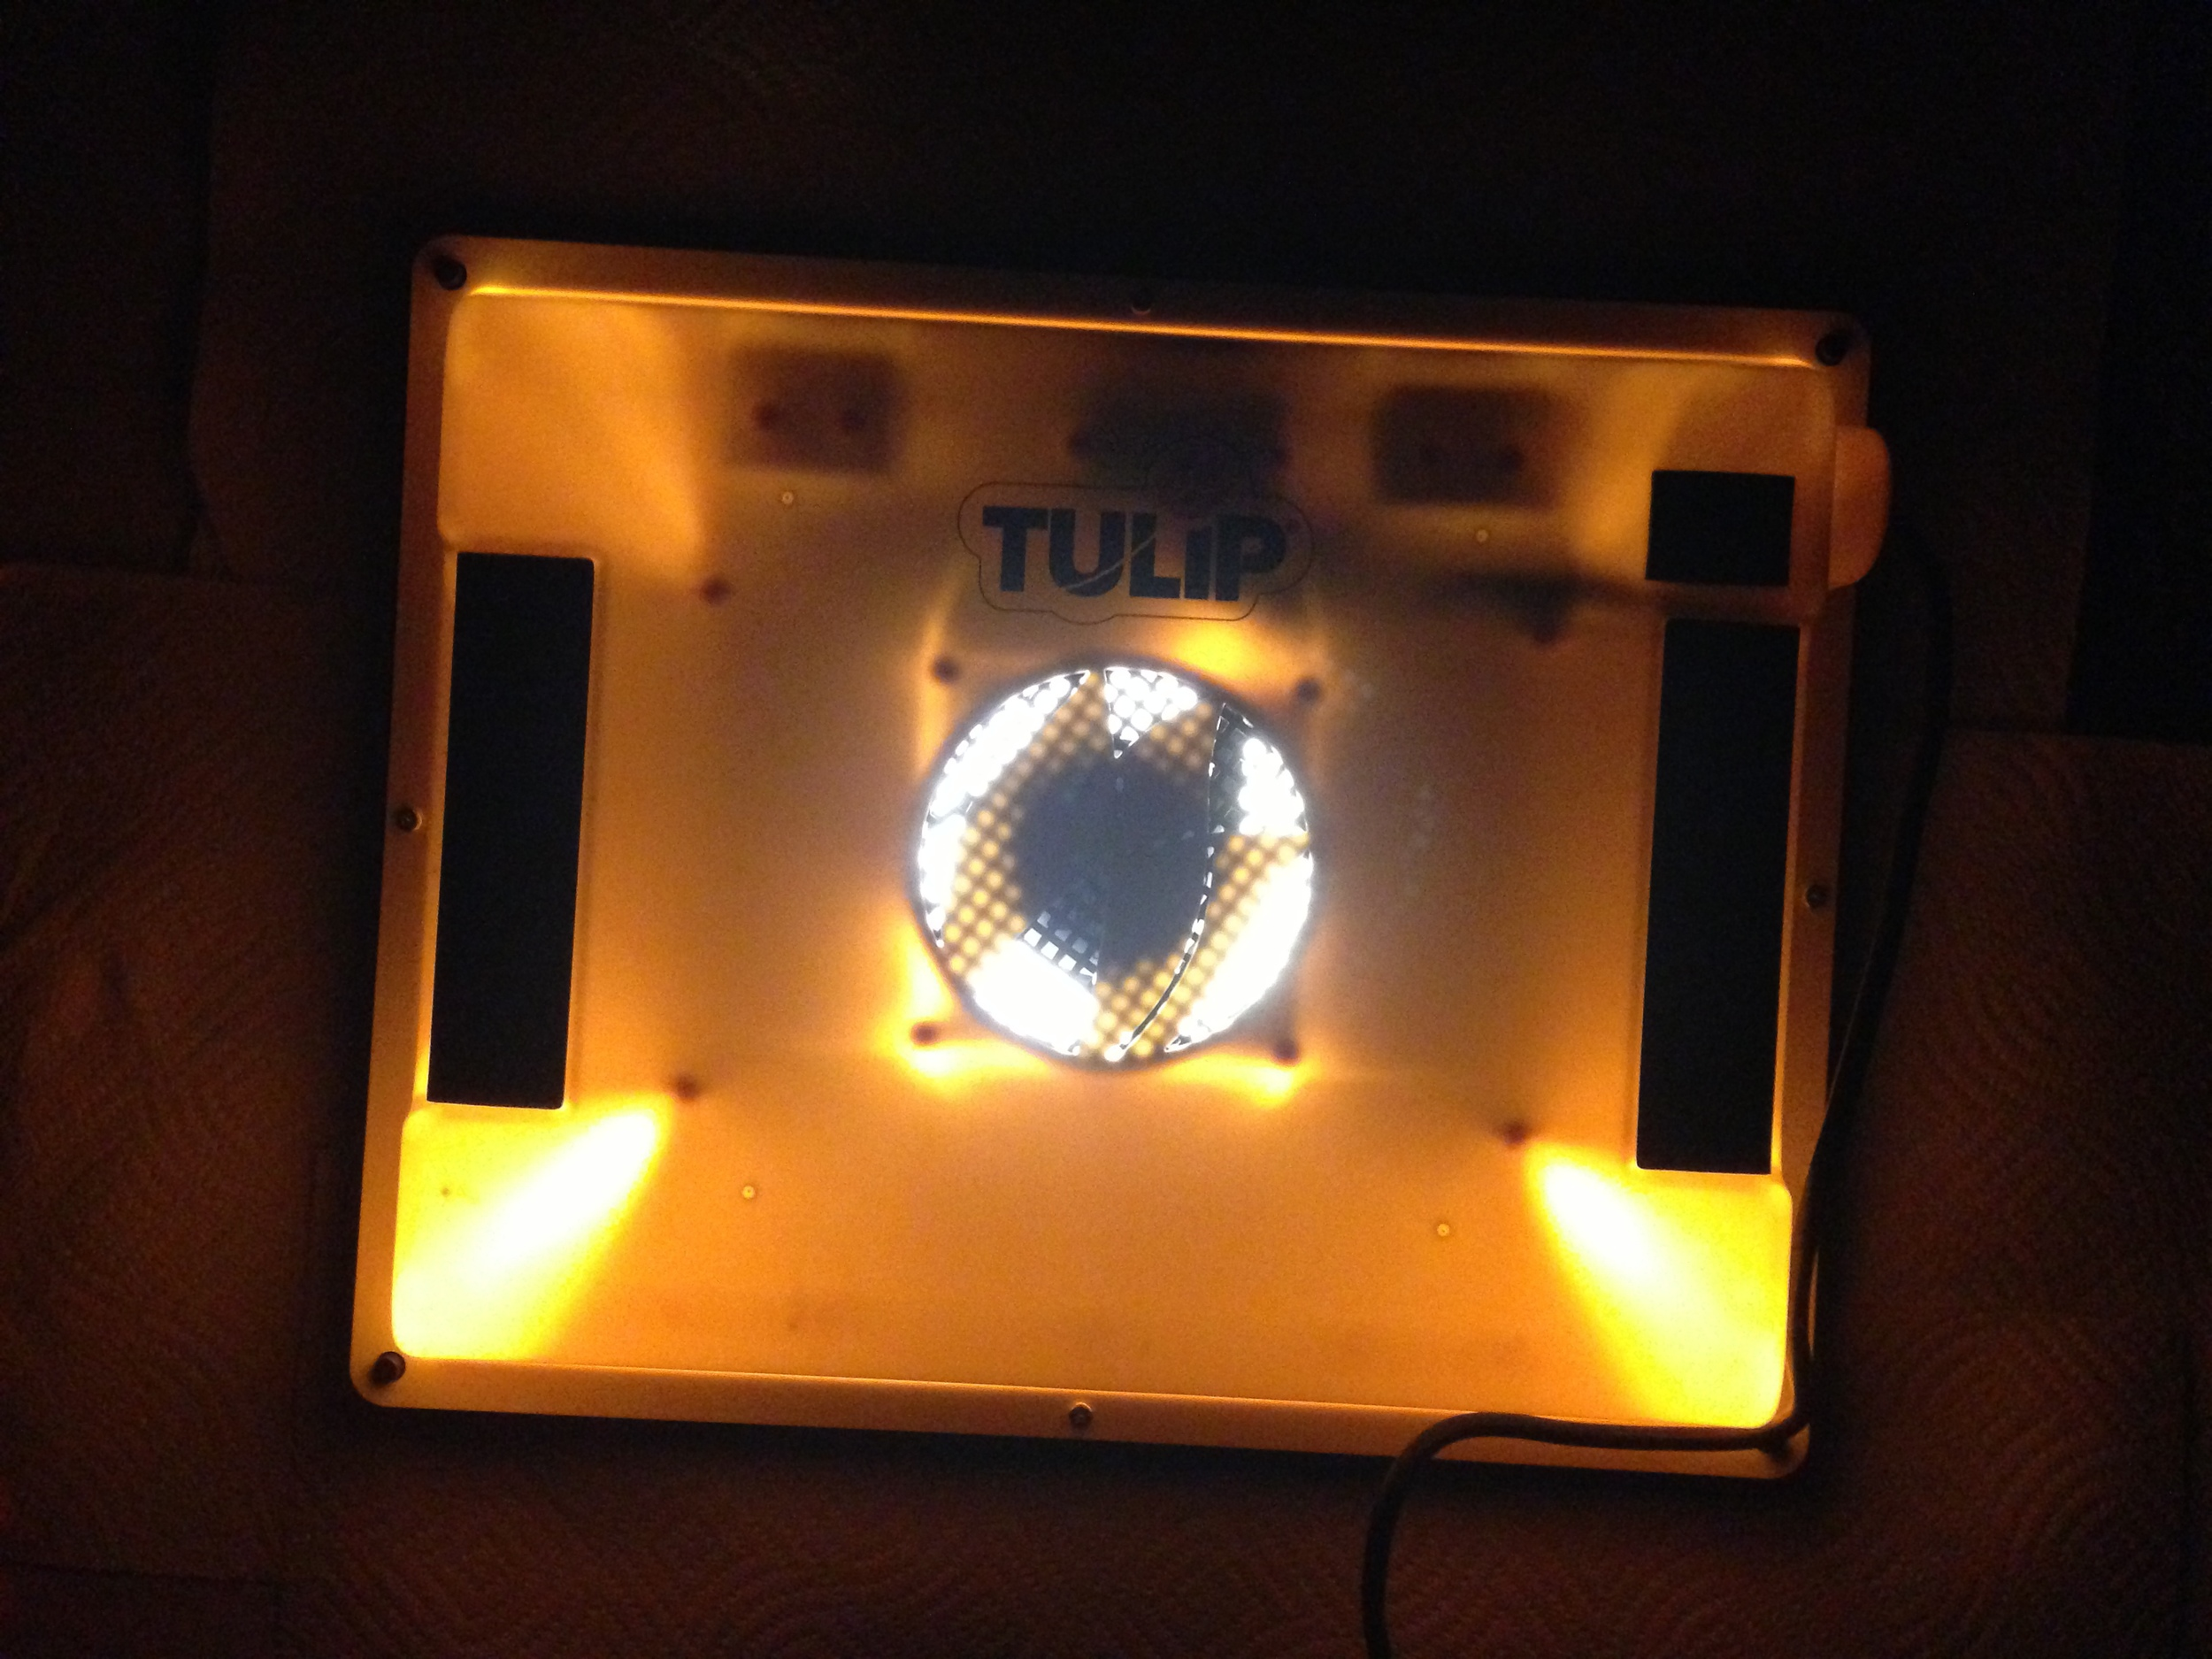 The darkroom bulb in process when burning the screen.